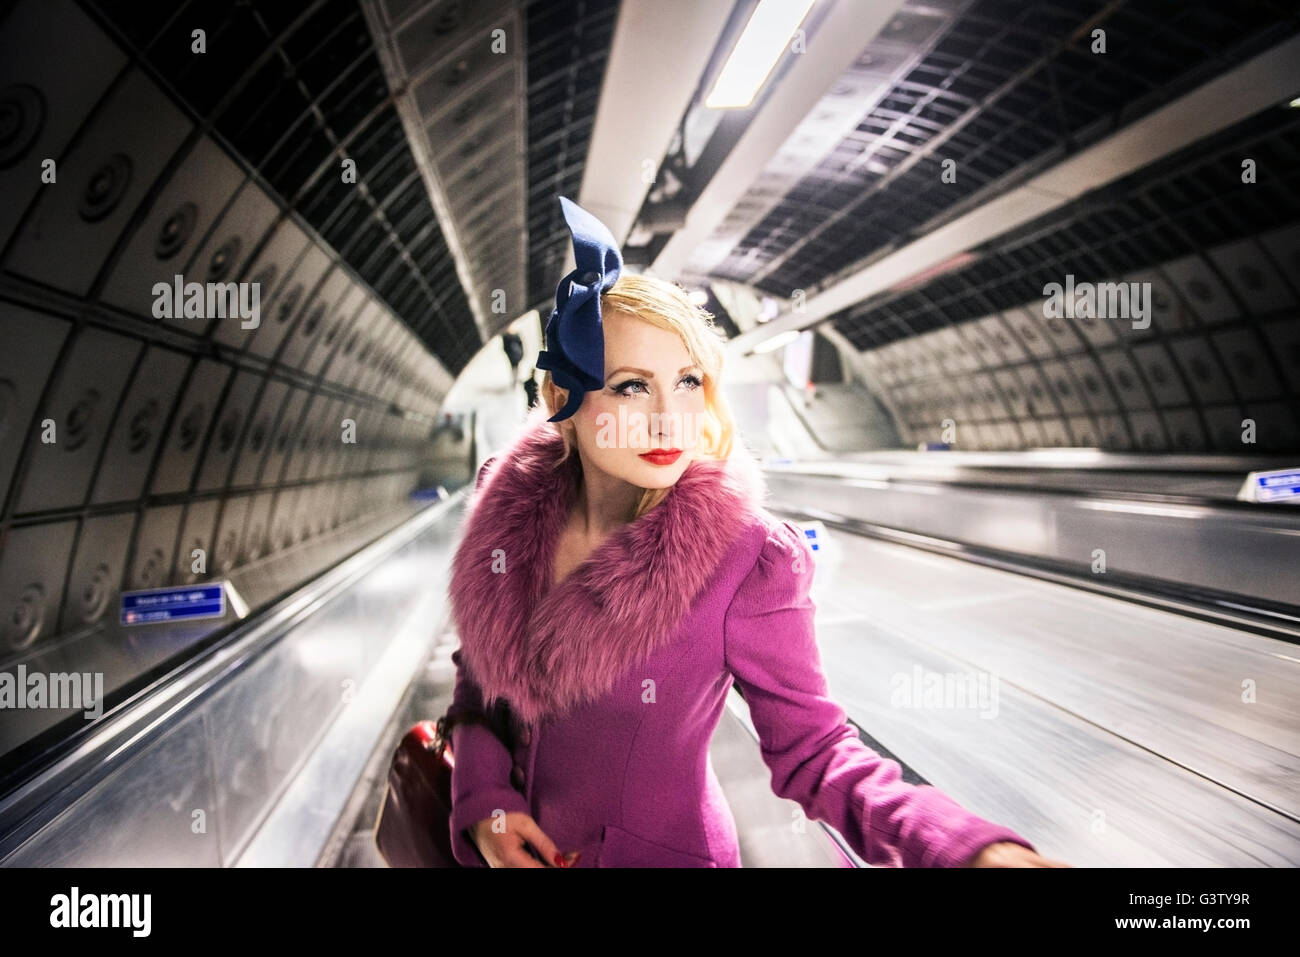 A stylish young woman dressed in 1930s style clothing on a London Underground escalator. - Stock Image